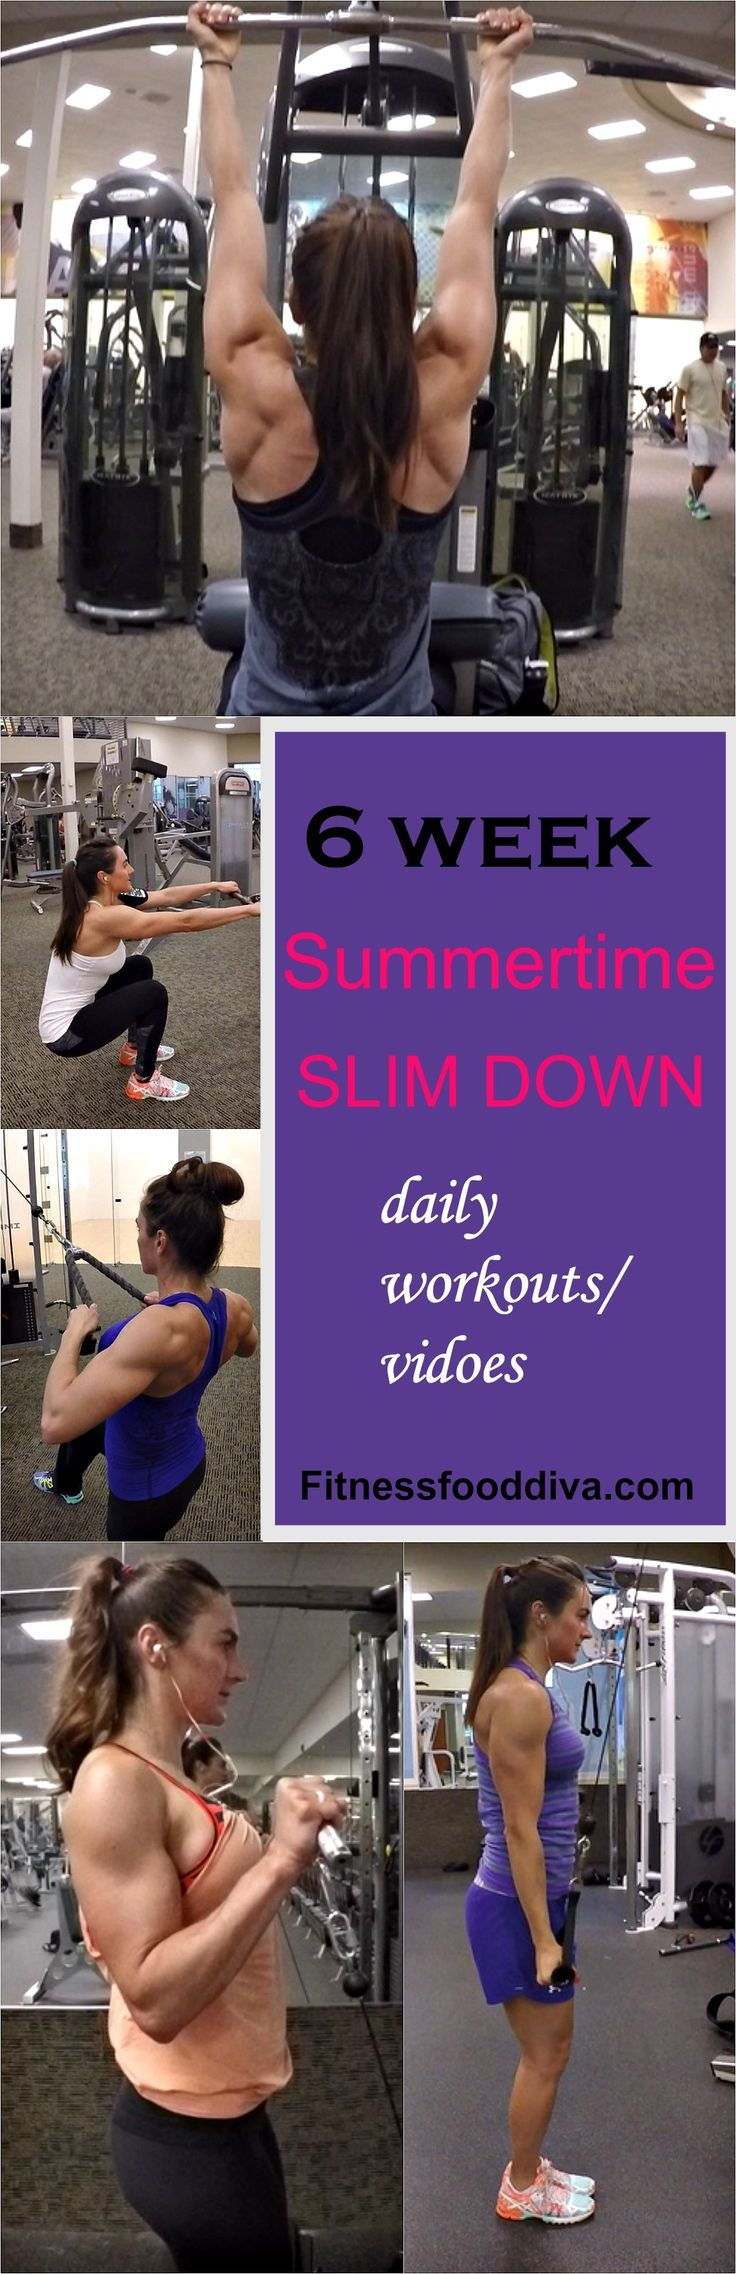 6 WEEKS SUMMERTIME SLIM DOWN PROGRAM Fitness food diva